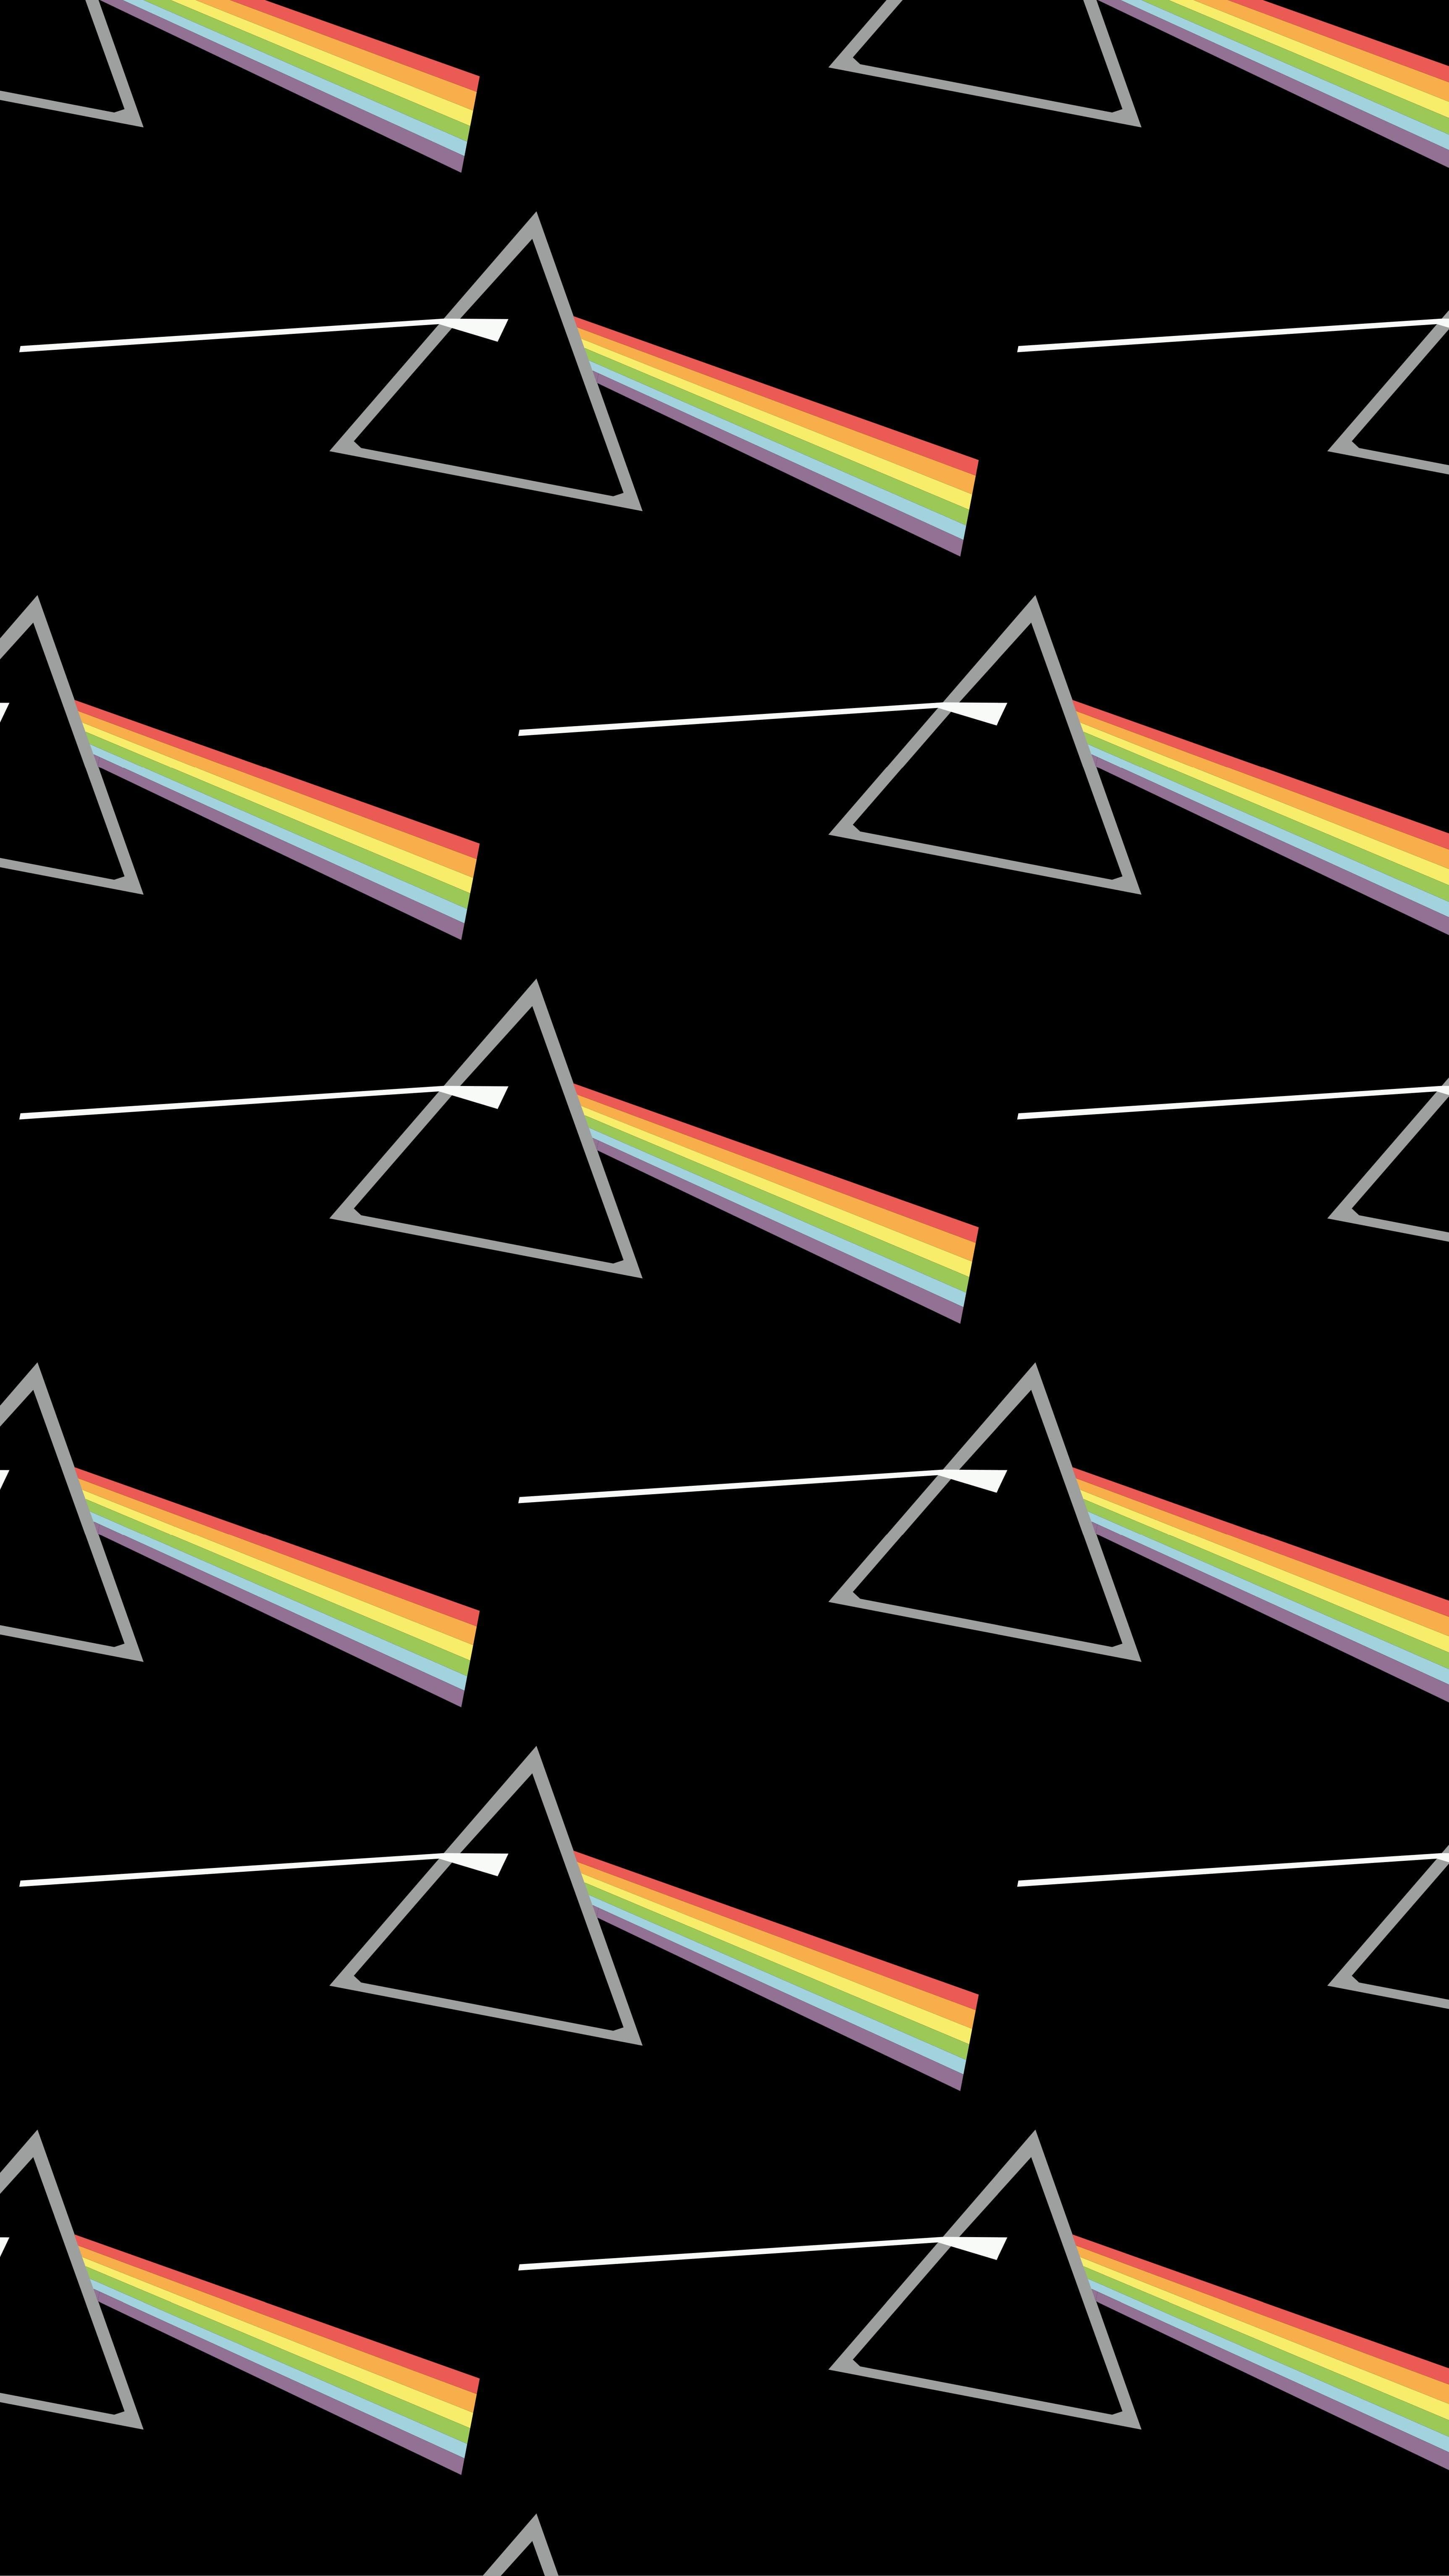 Iphone Pink Floyd Wallpaper : iphone, floyd, wallpaper, Heres, Floyd, Wallpaper, Mobile, Devices, #Music, #IndieArtist, #Chicago, Wallpaper,, Iphone,